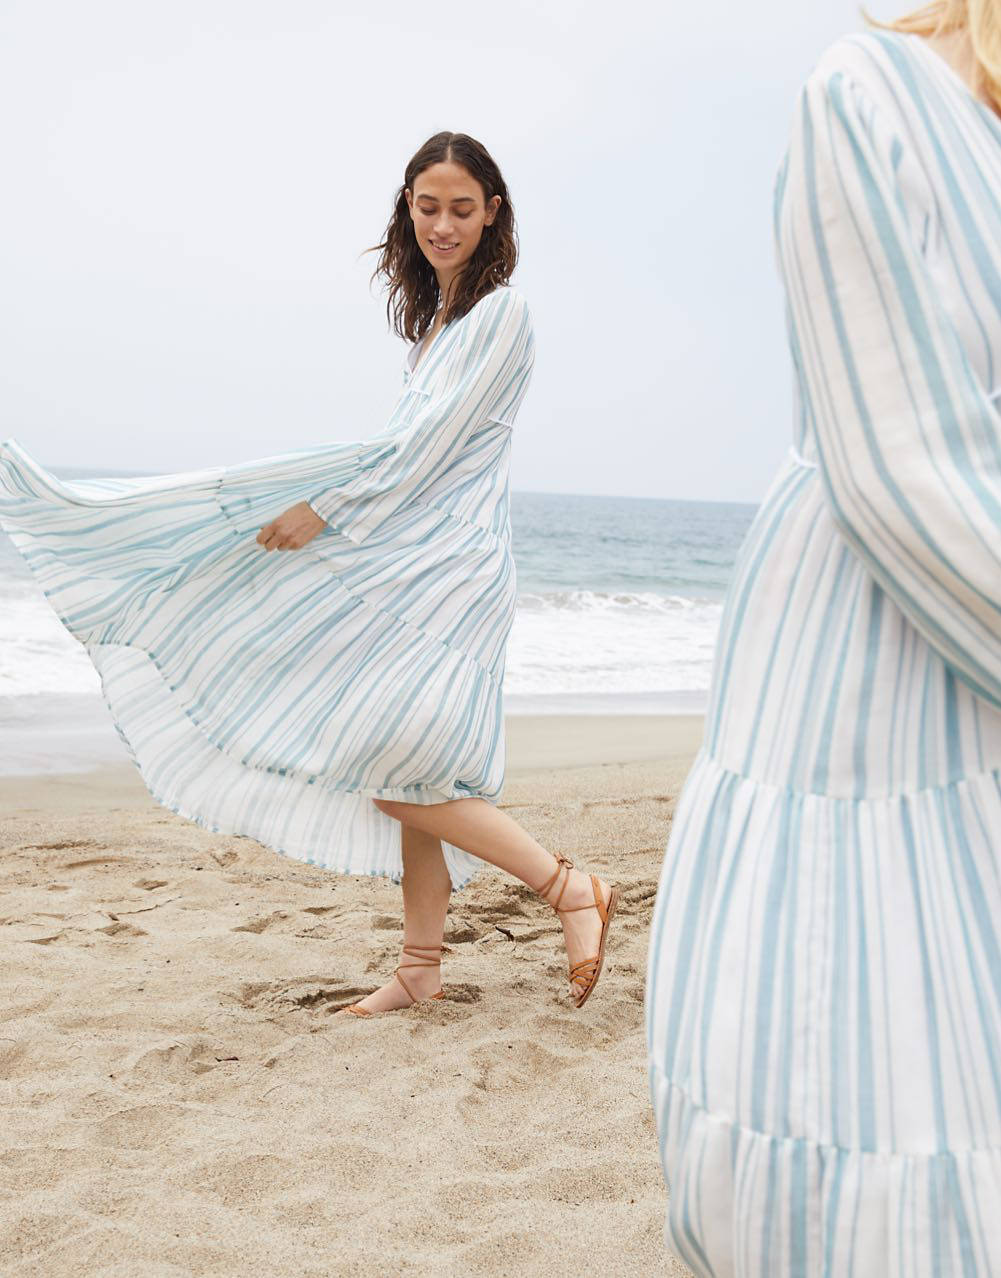 Madewell x Christy Dawn Exclusive Collaboration - striped dress